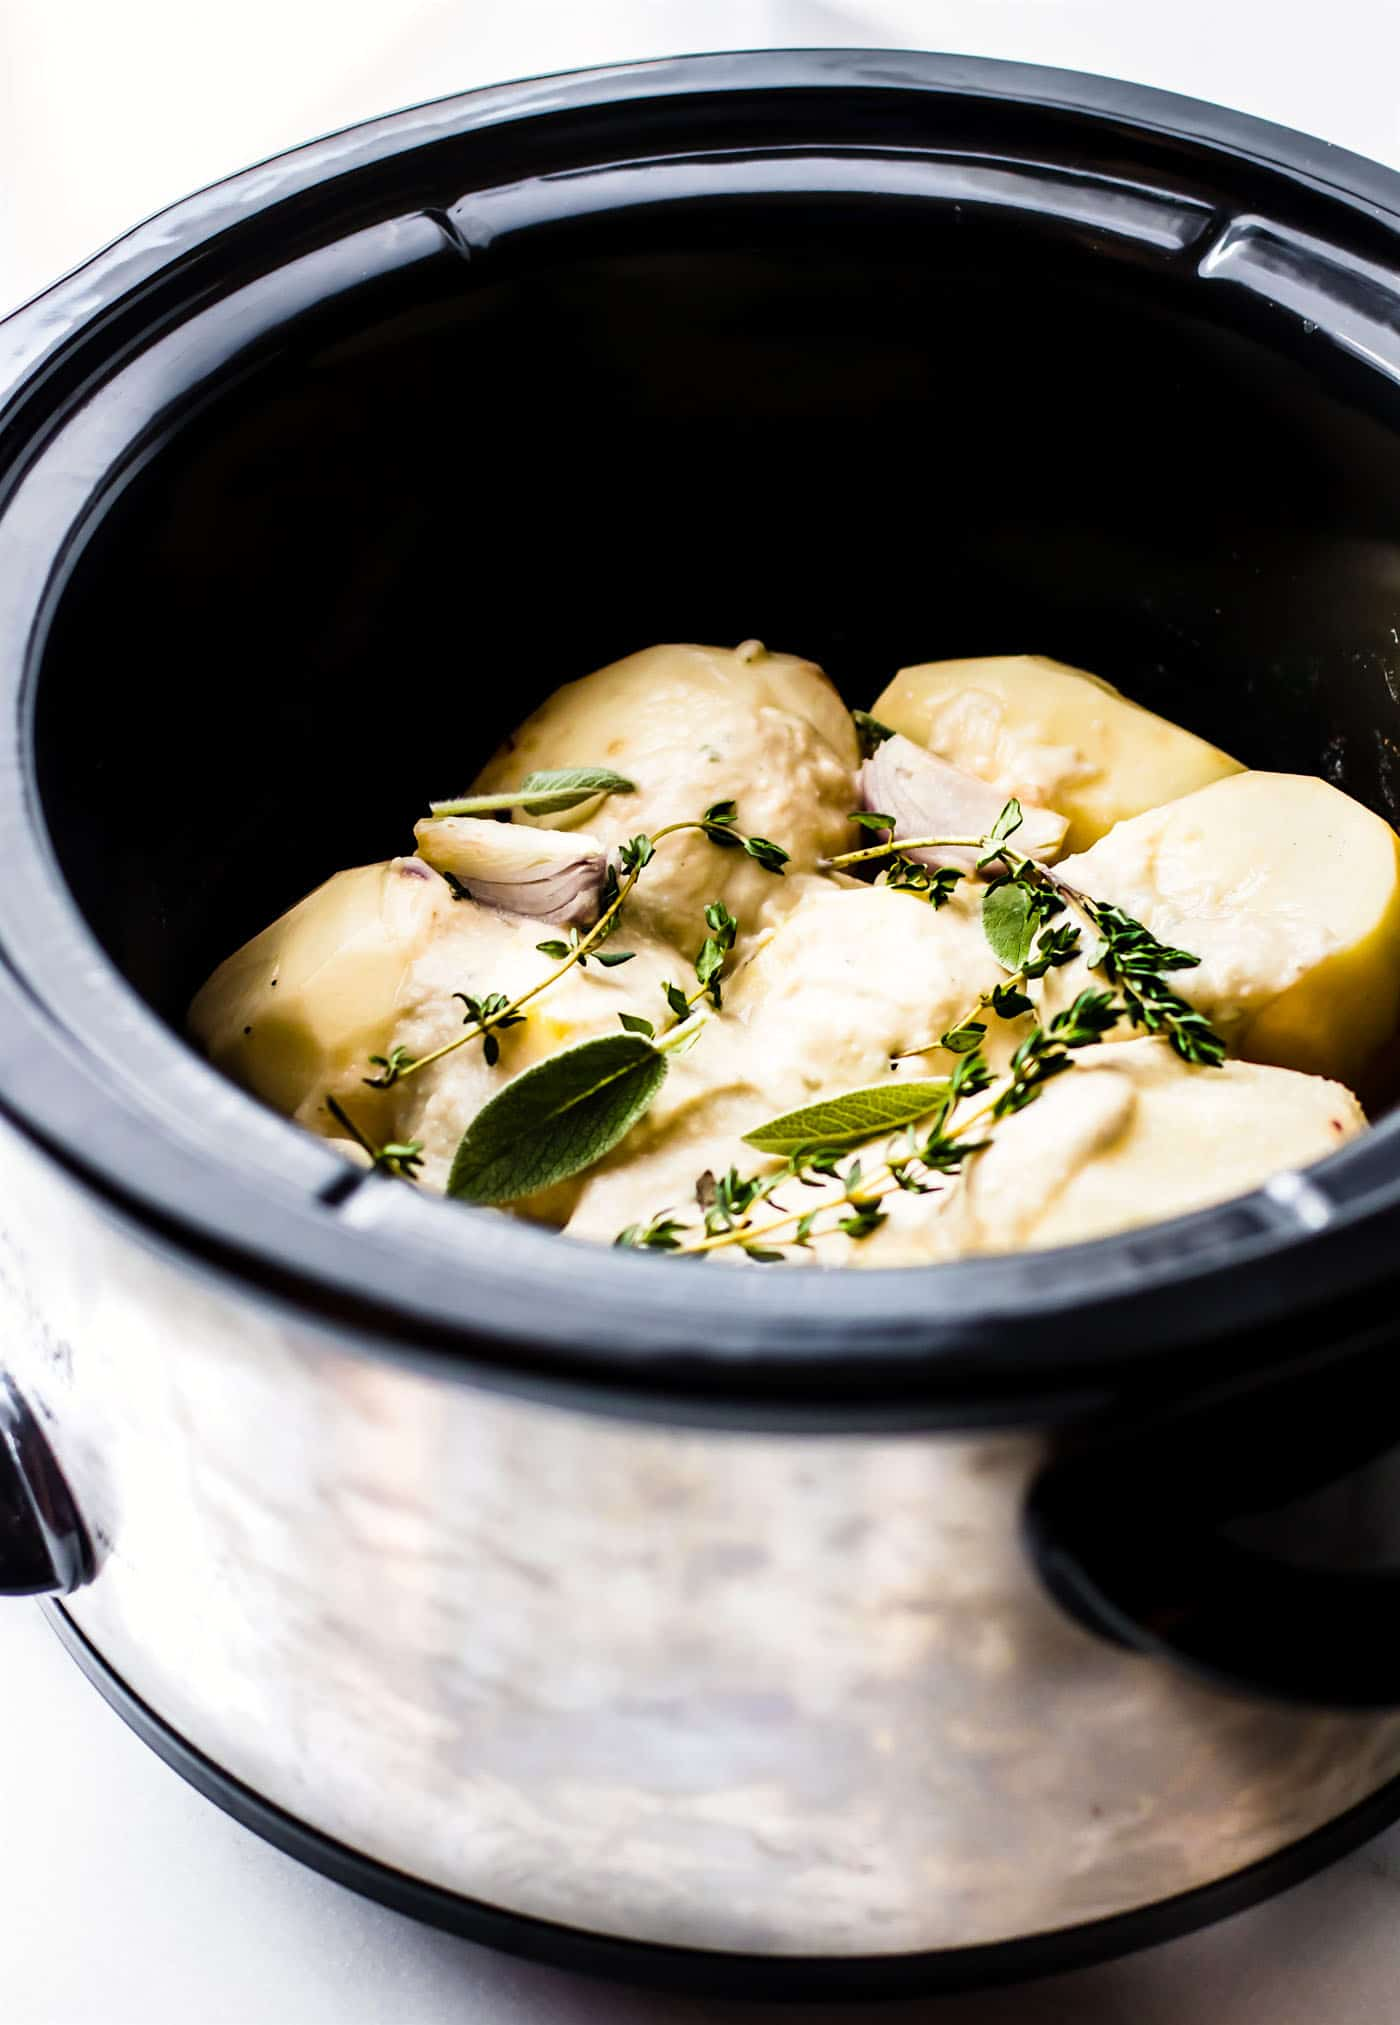 potatoes and herbs in a slow cooker